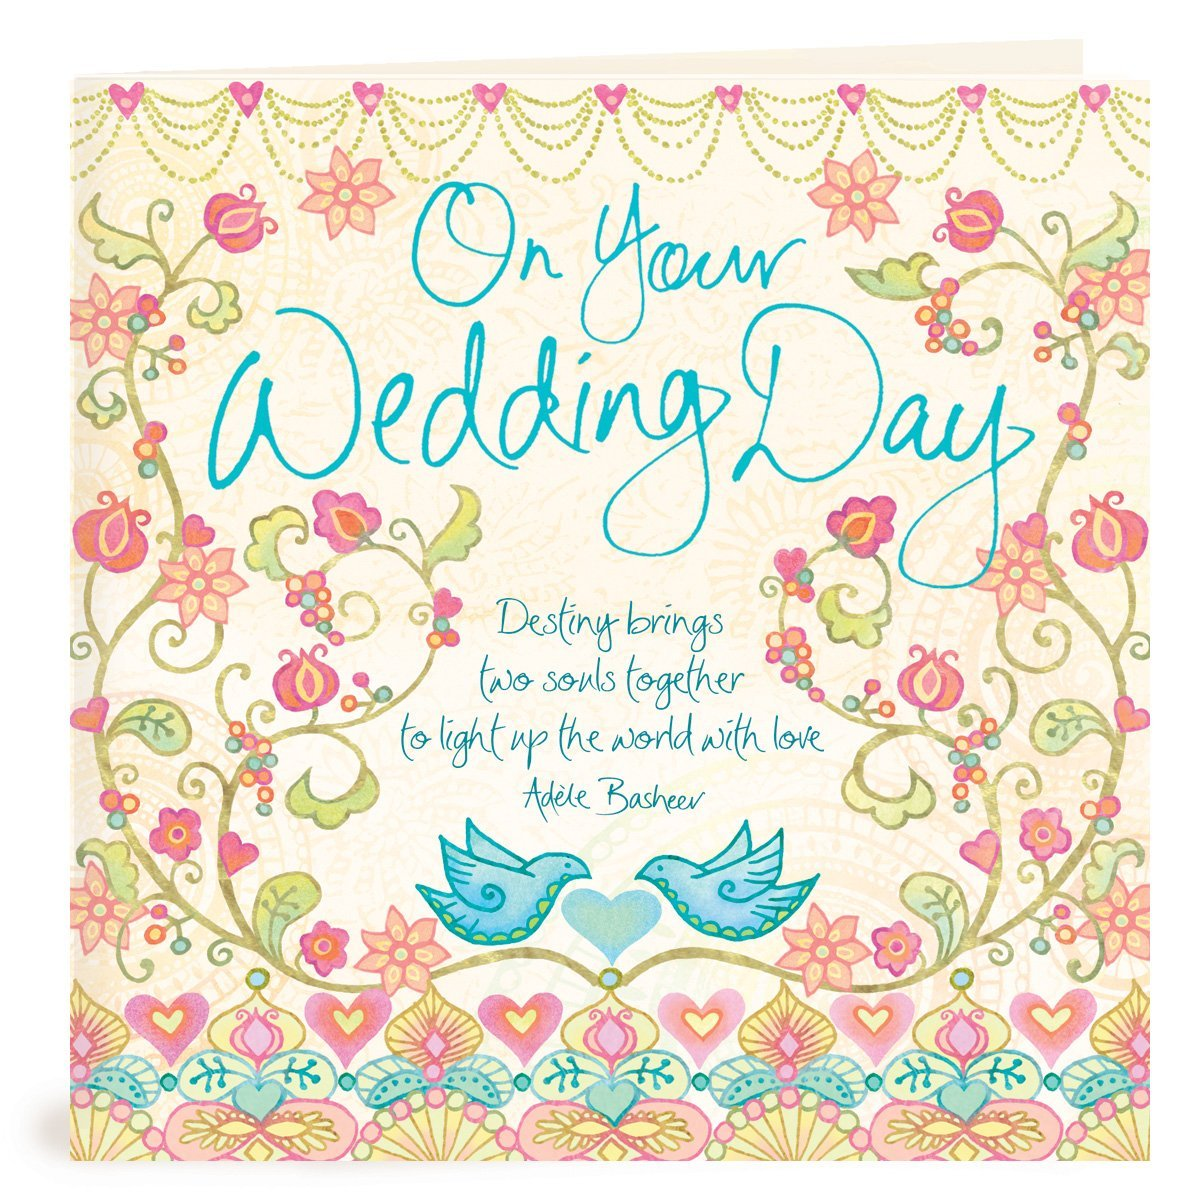 Wedding Greeting Cards.On Your Wedding Day Greeting Card